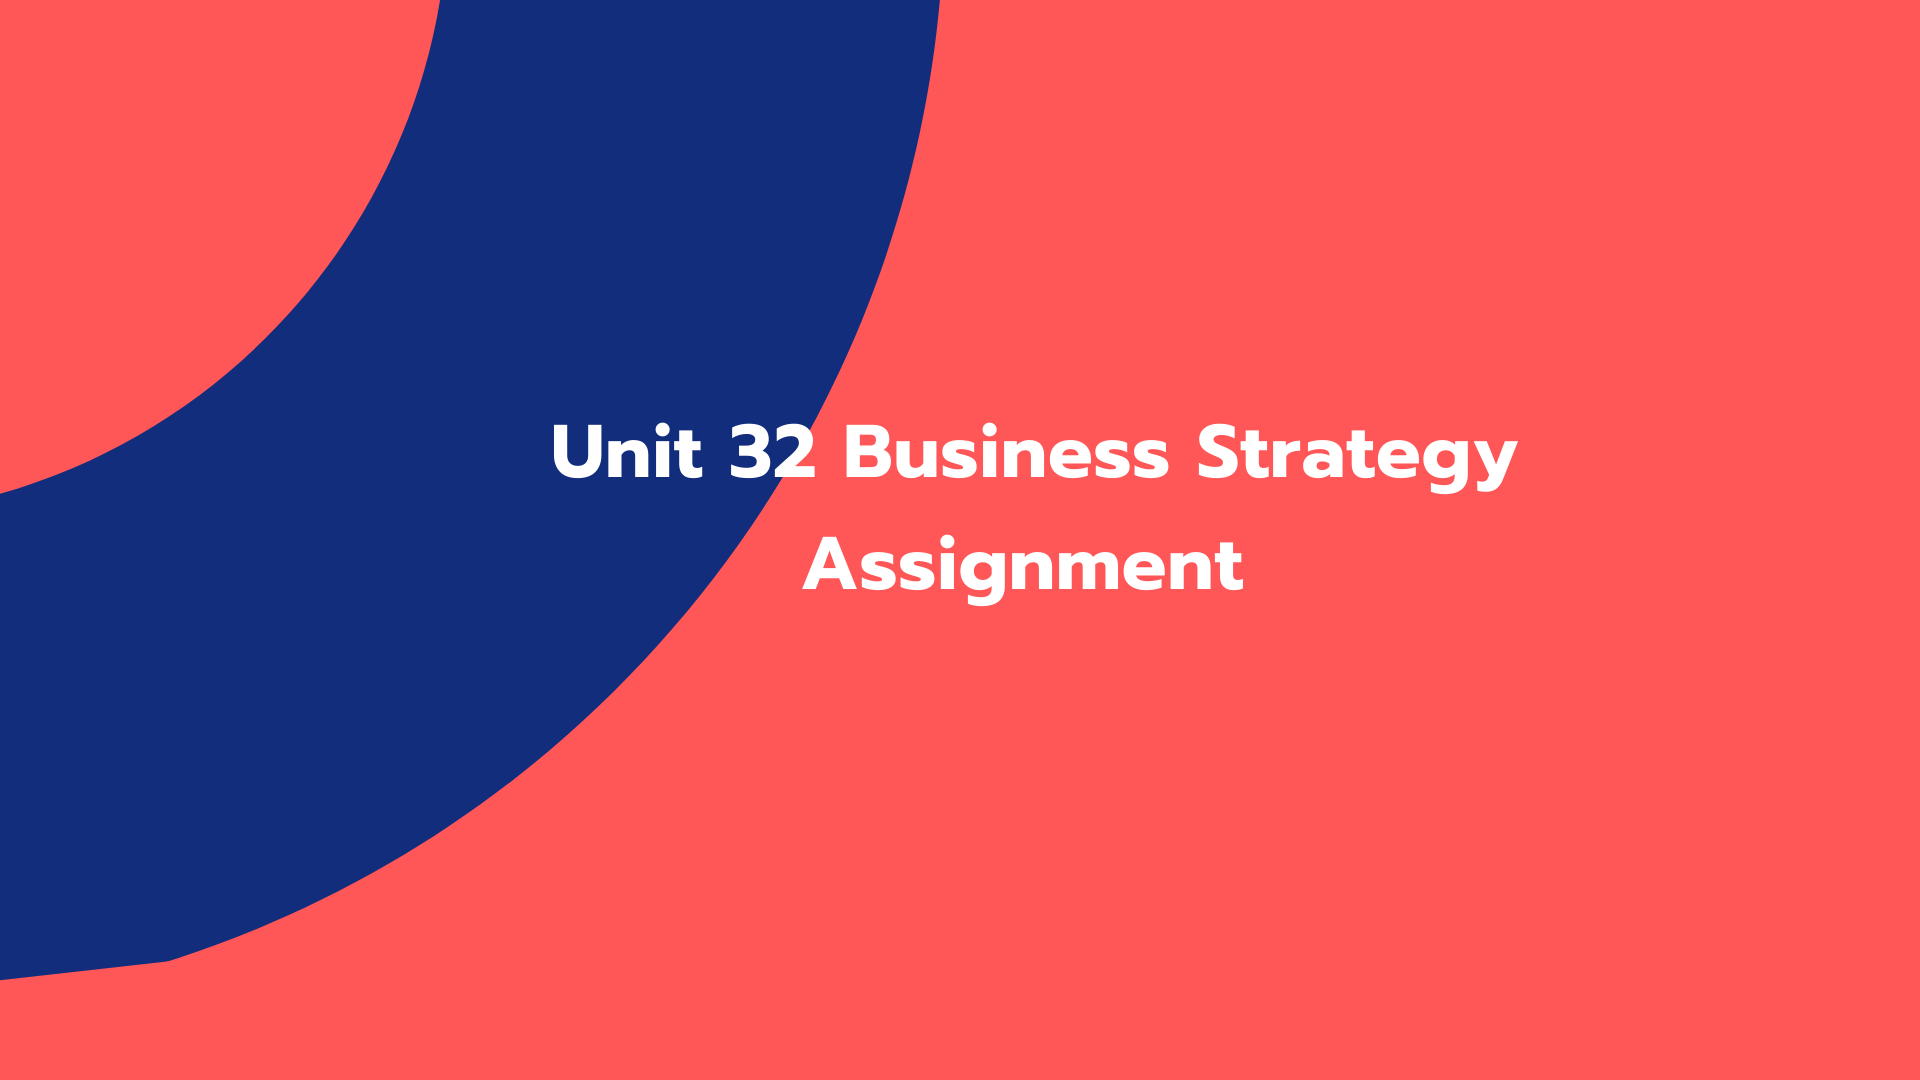 Unit 32 Business Strategy Assignment